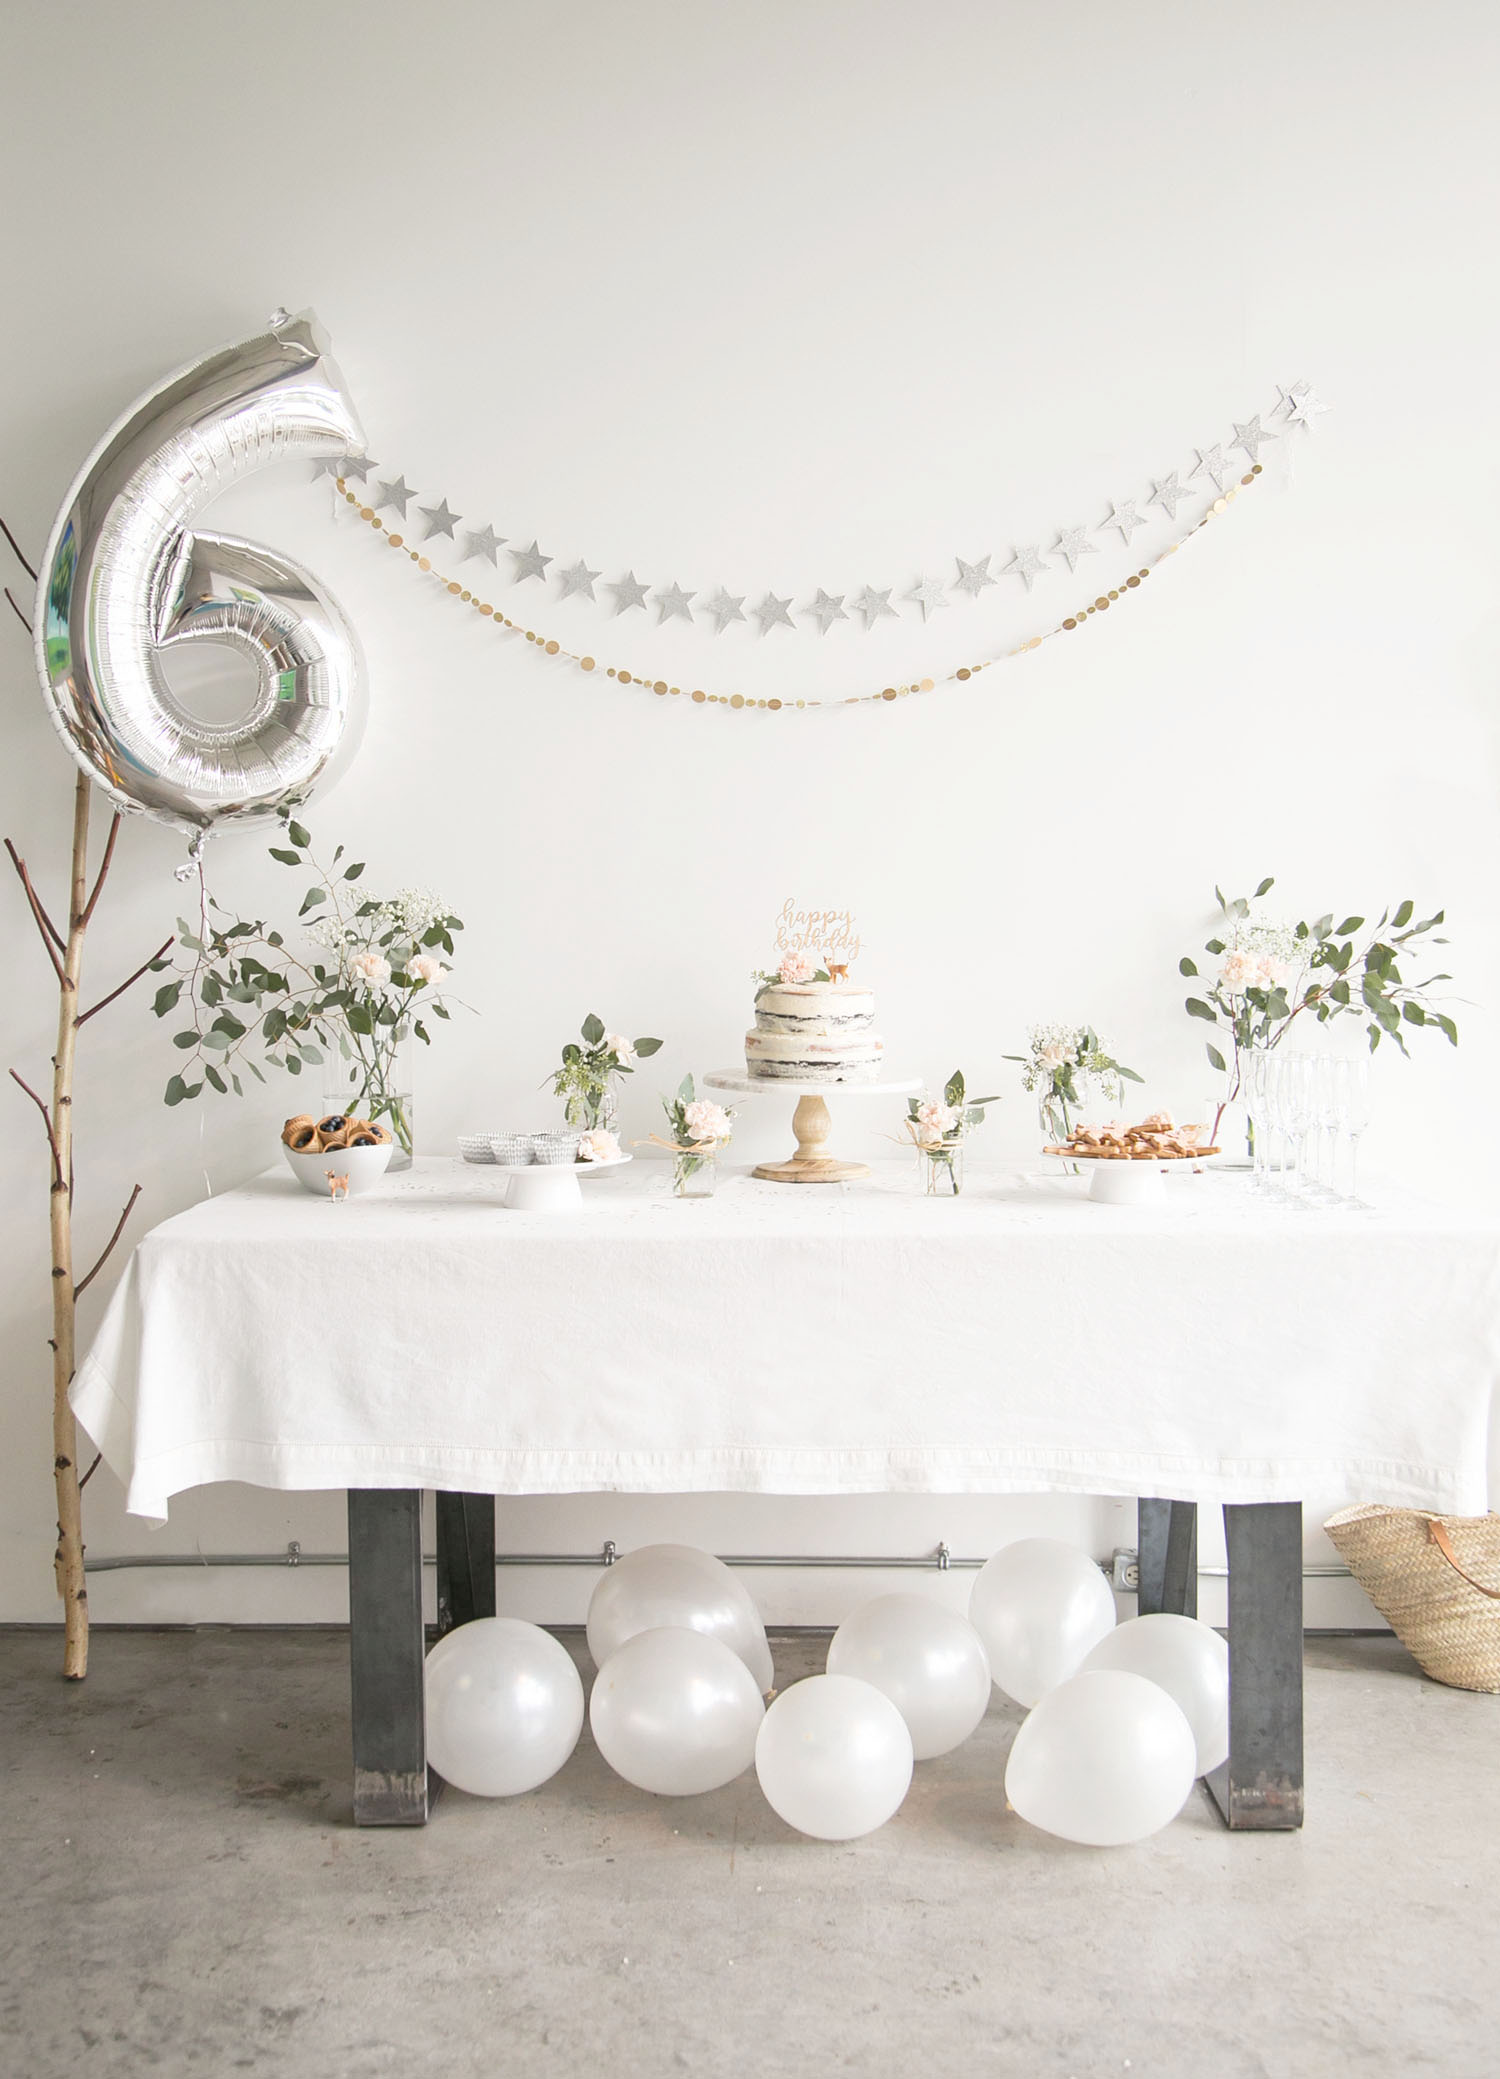 6 year old girl birthday party table